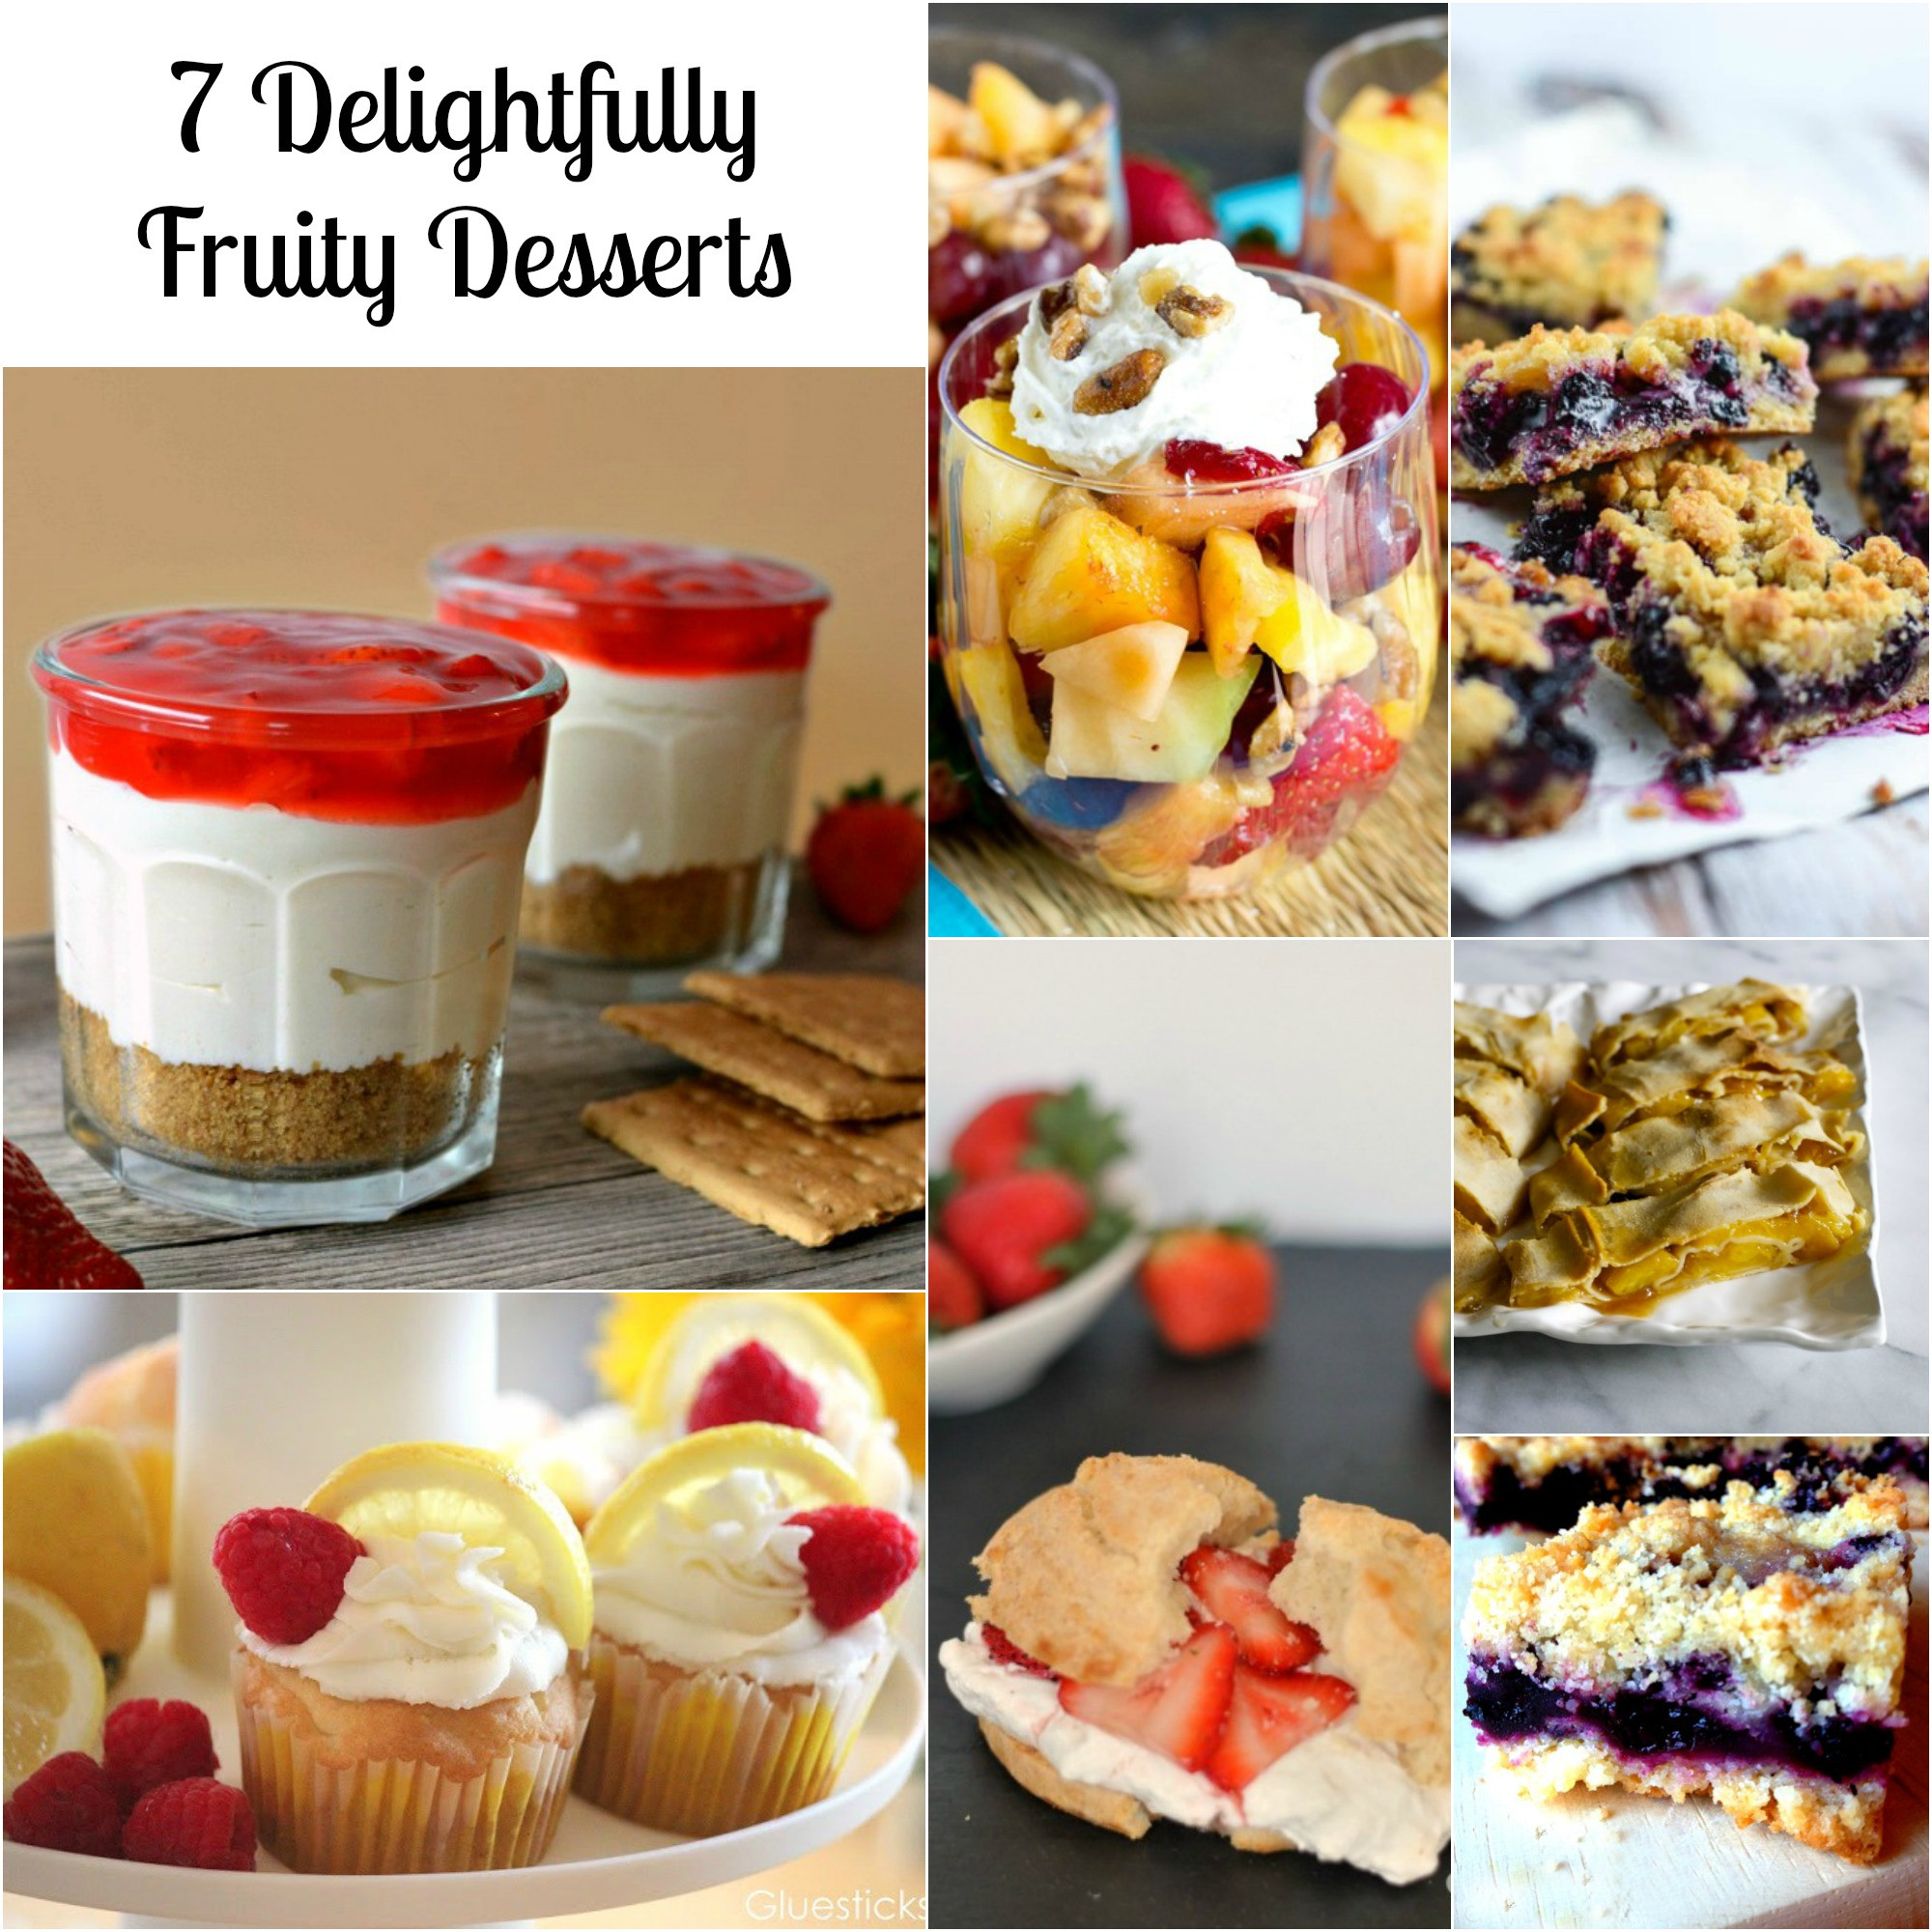 Summer Cake Recipes  7 Summer Dessert Recipes You Have to Try SoFabFood